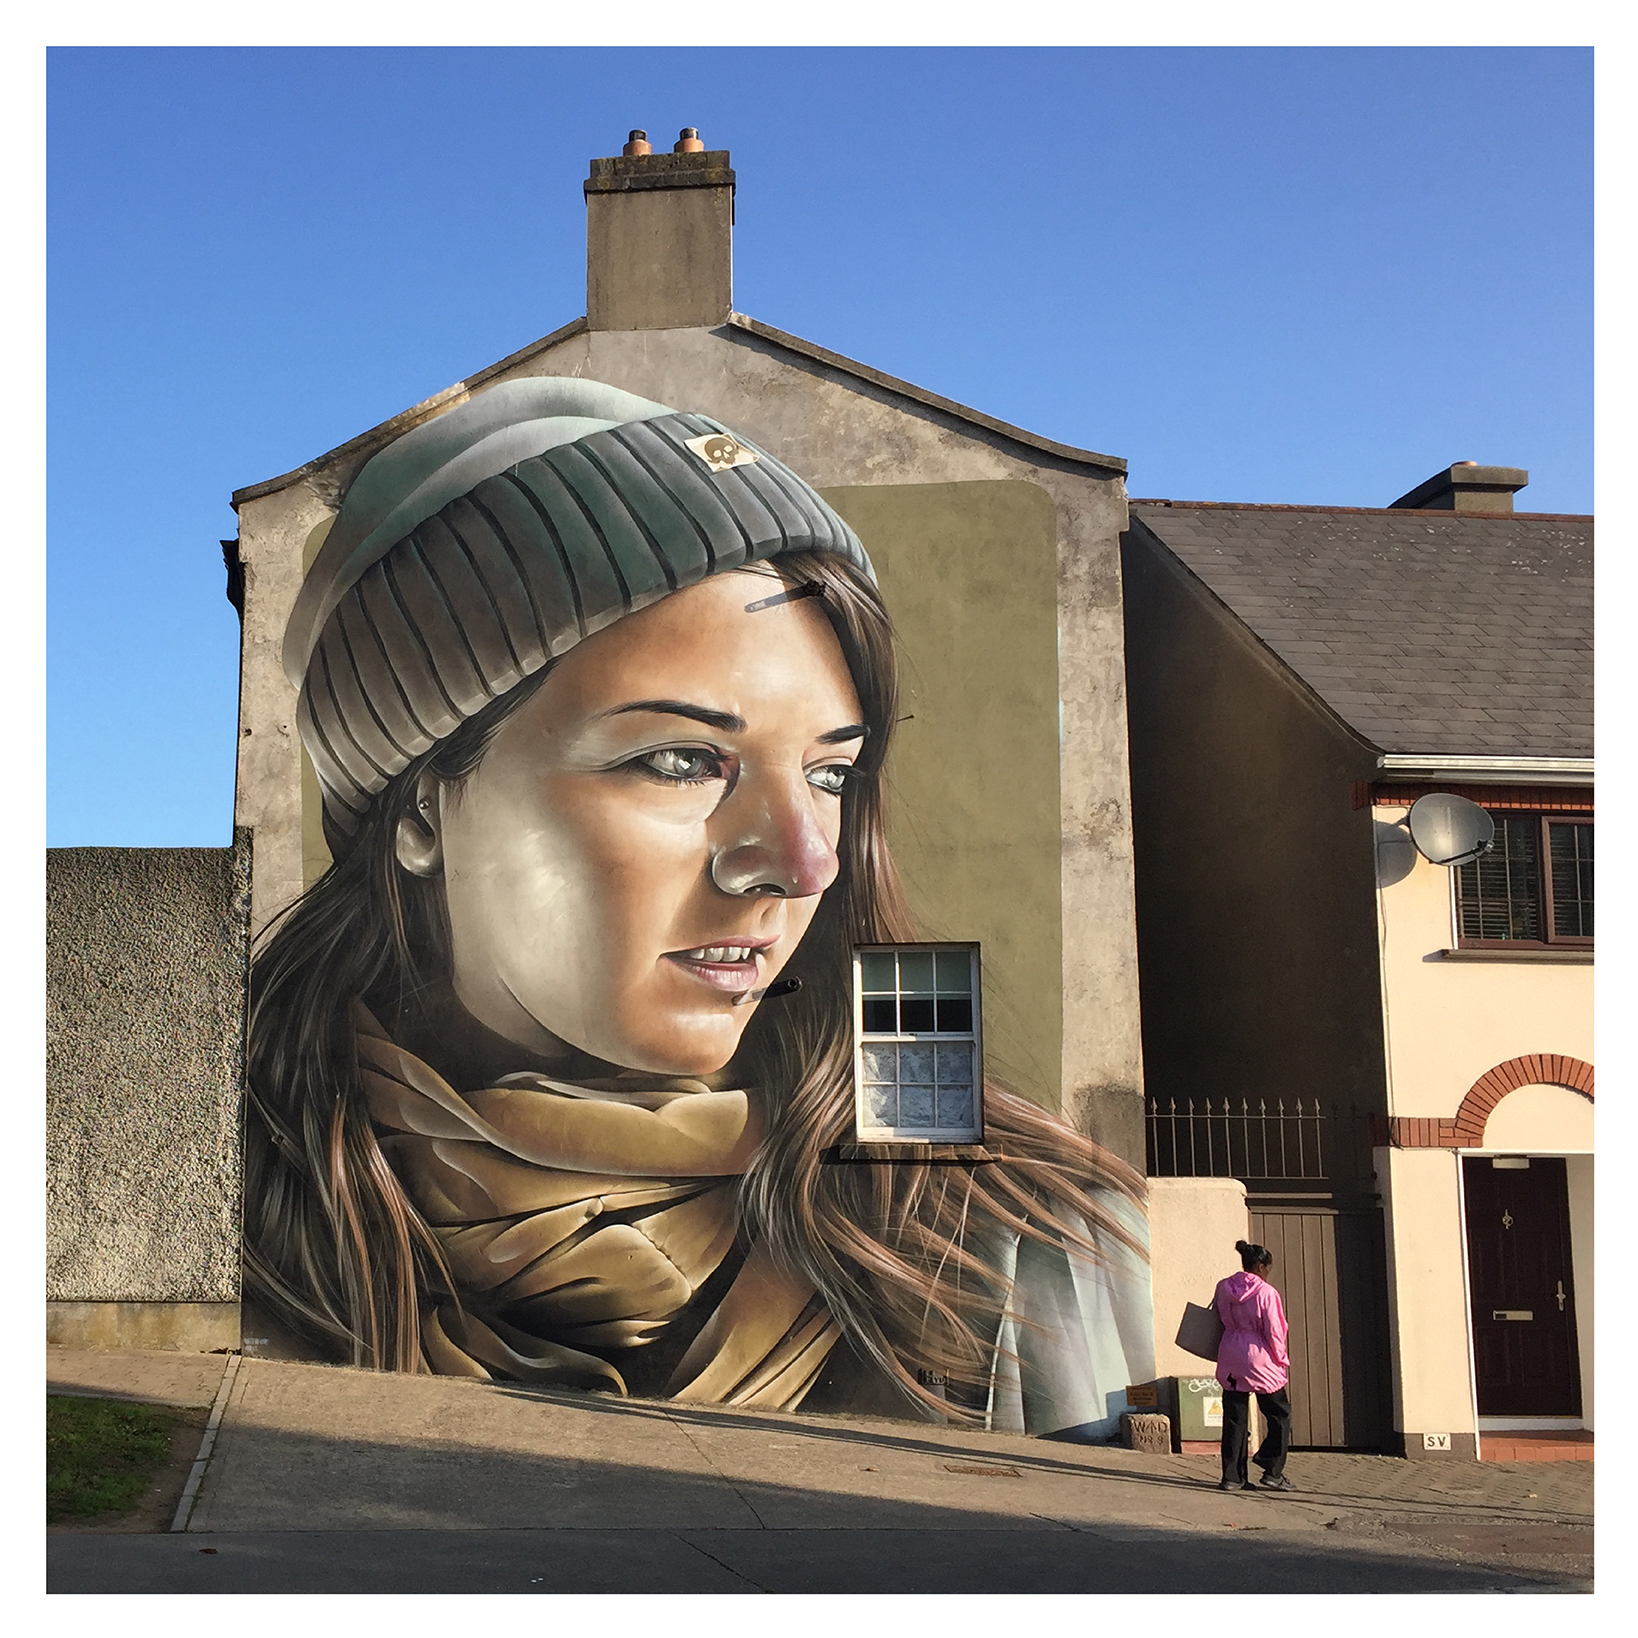 Street Artists transform Waterford City, mural by artist Smug.